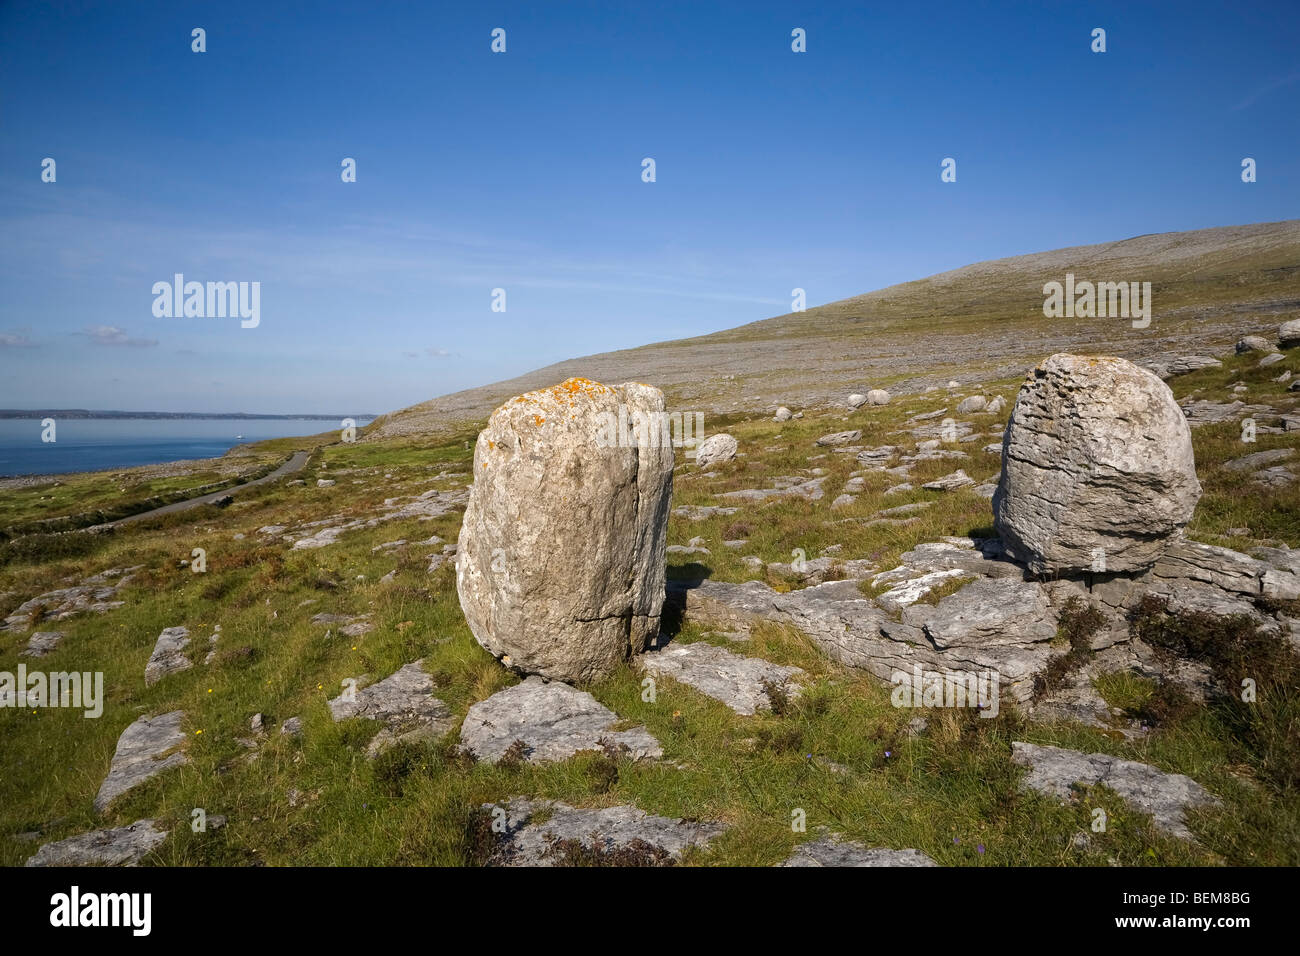 Erratics (Boulders from Glacial Action),  on The Burren, County Clare, Ireland - Stock Image